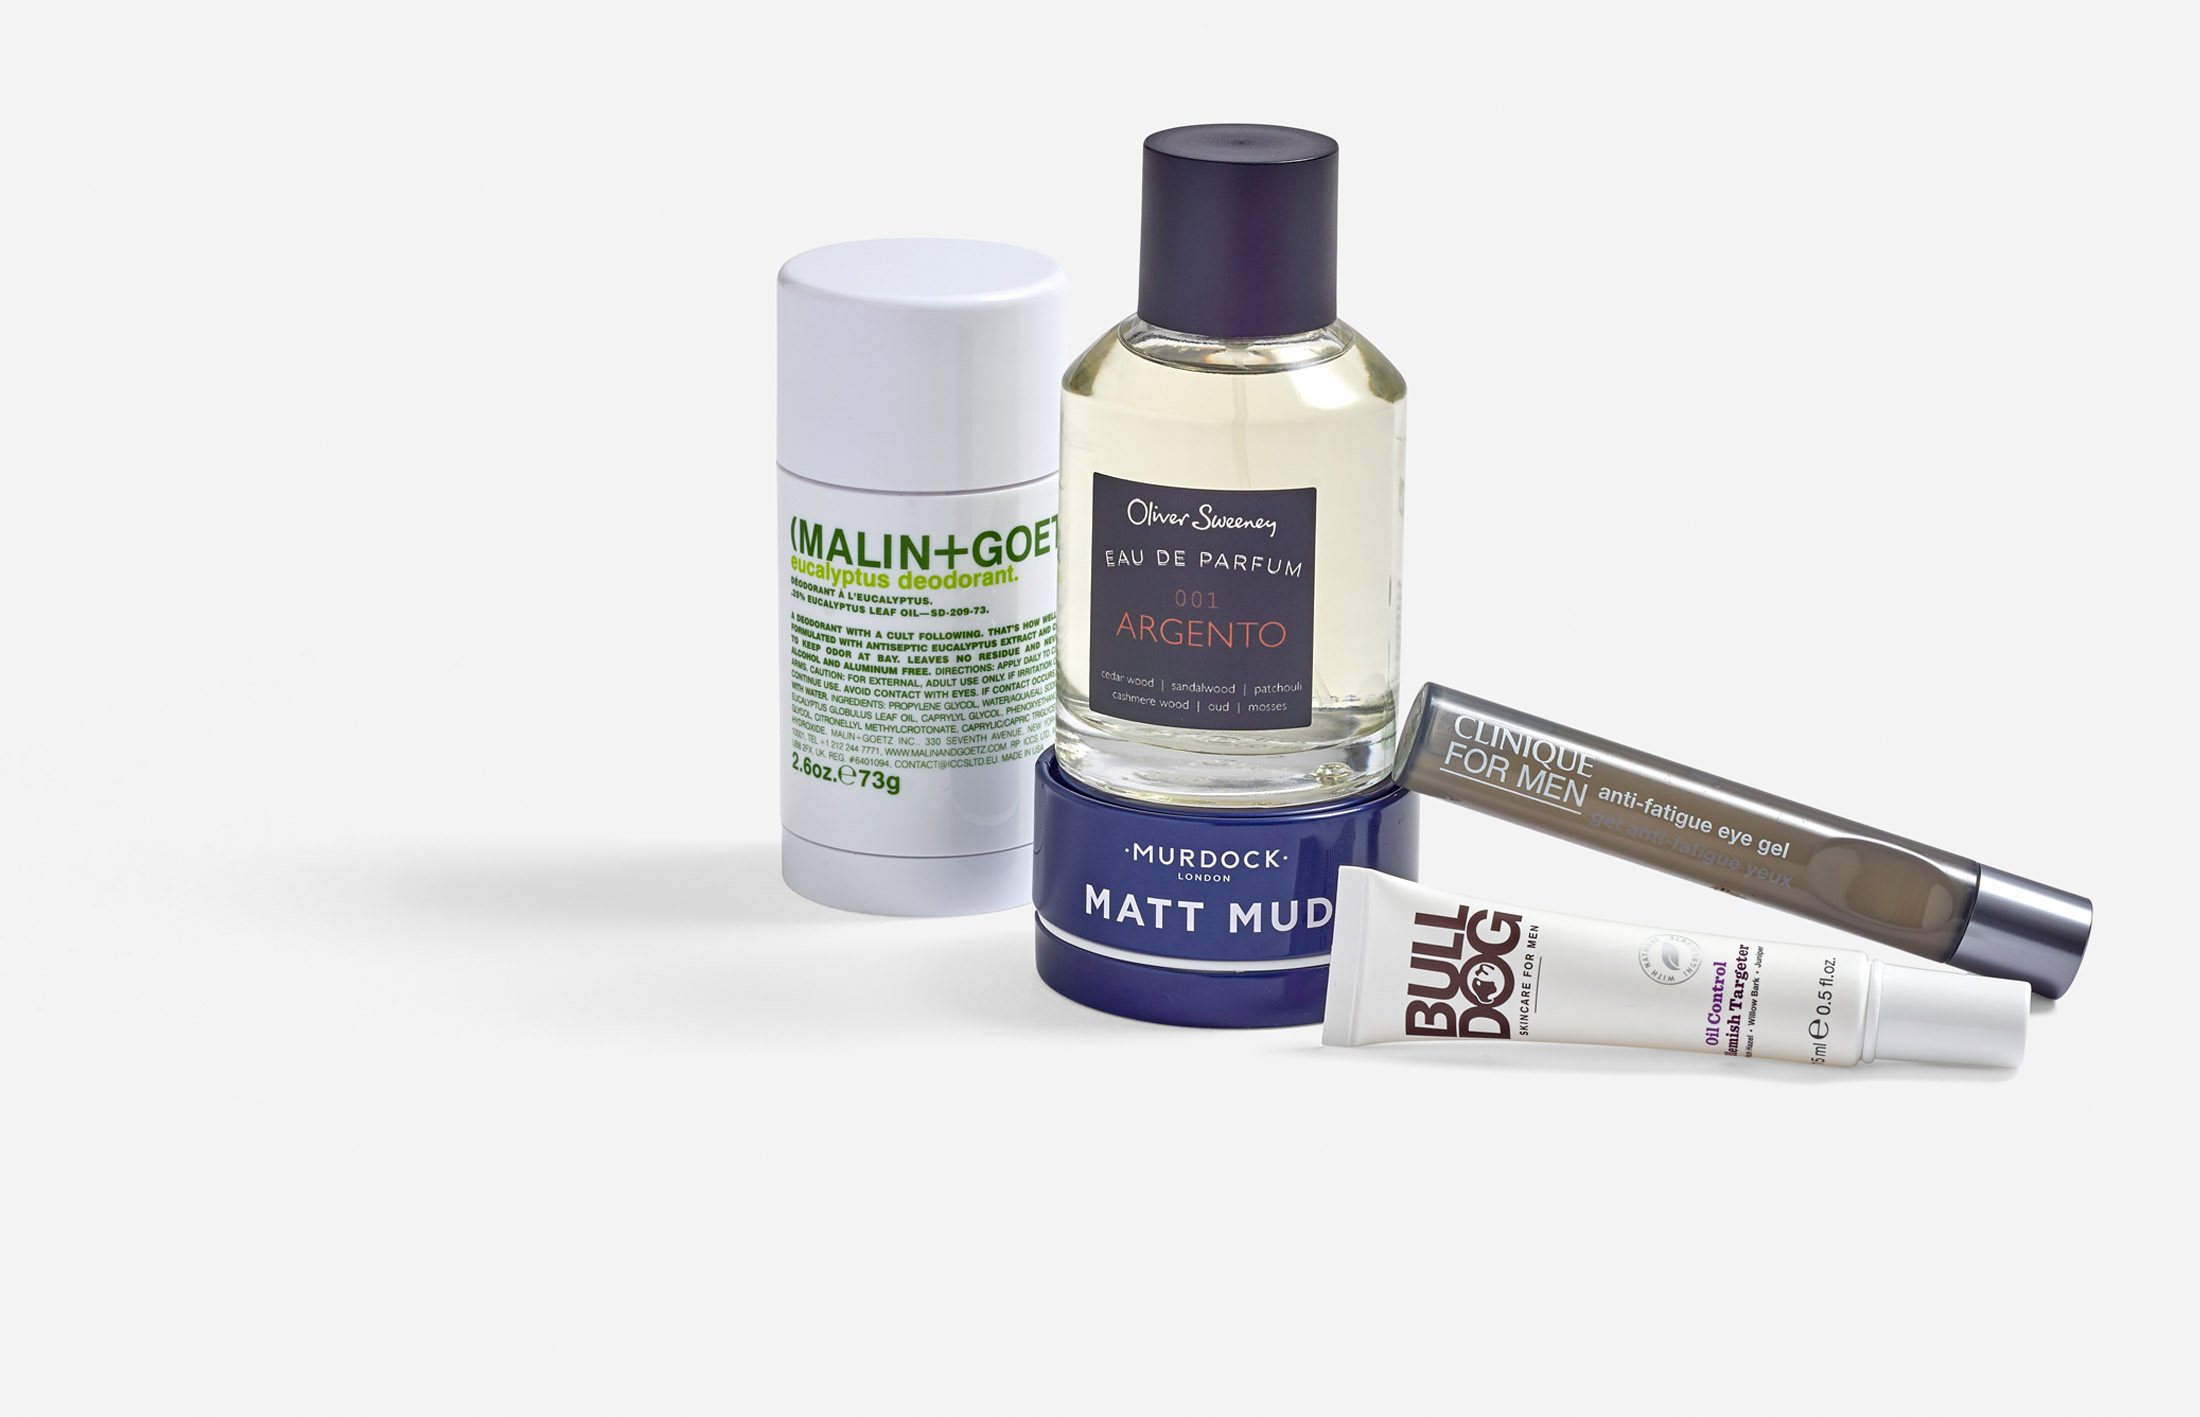 The desk drawer grooming essentials